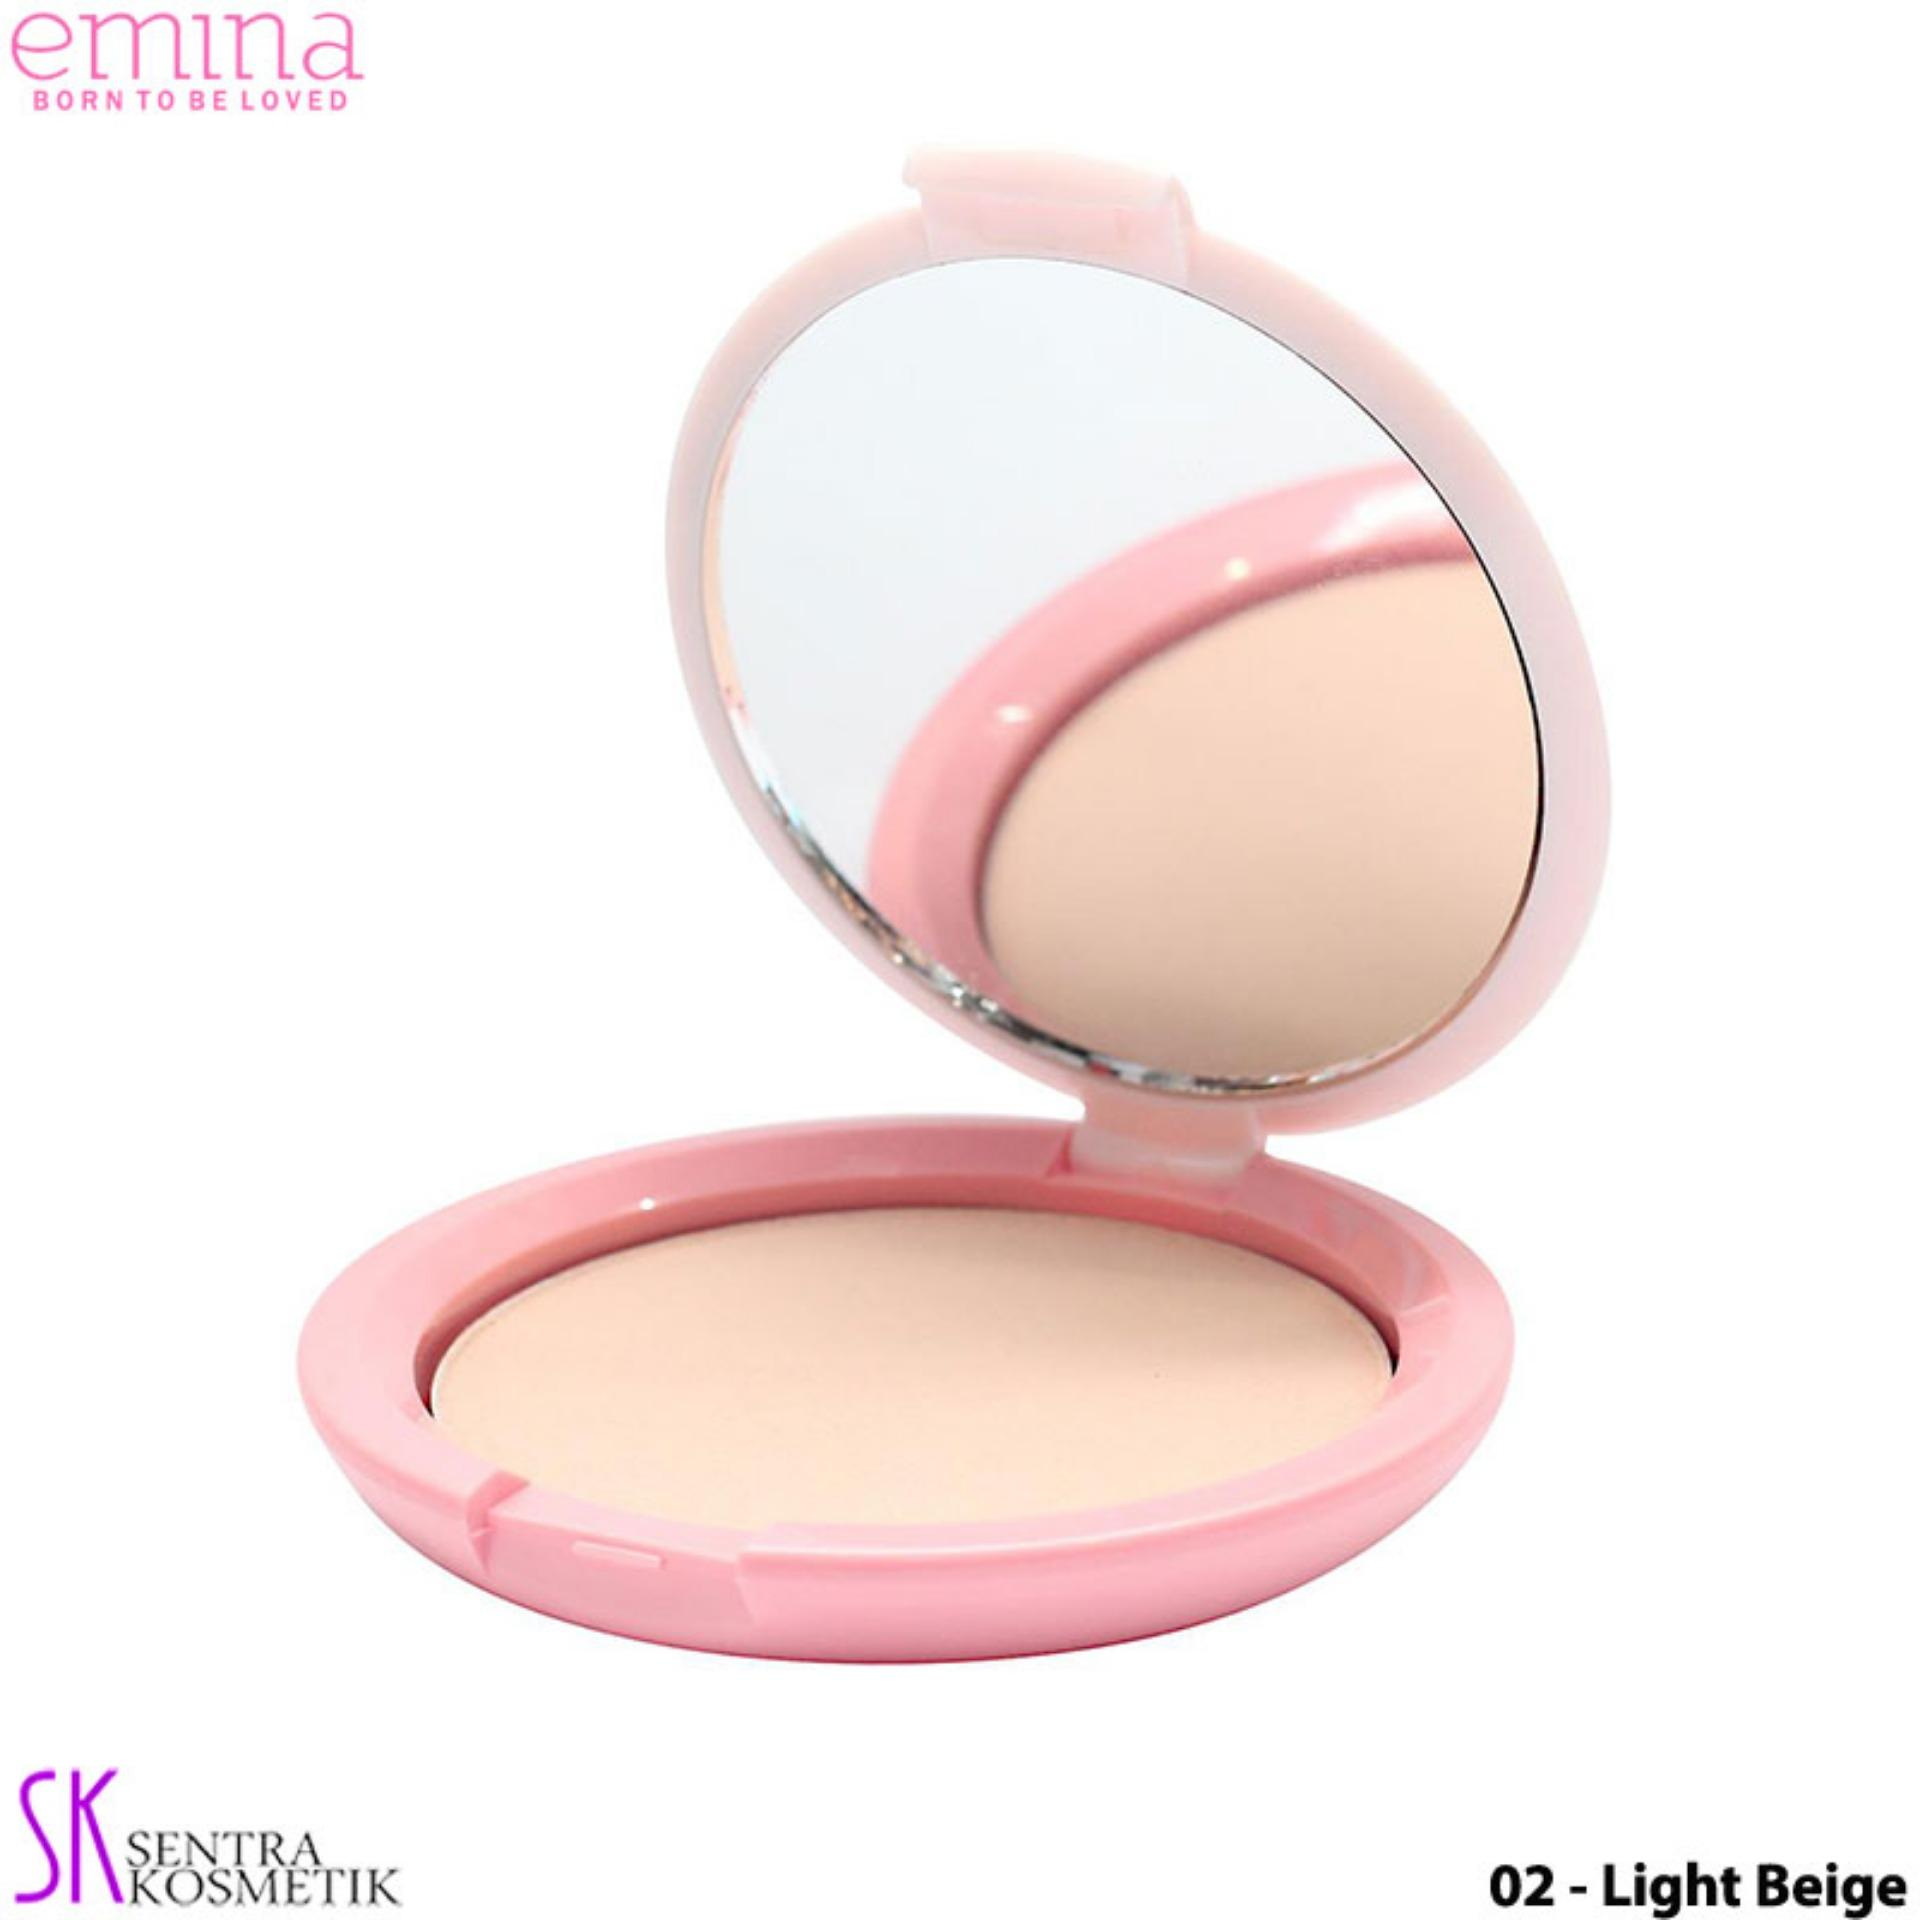 Buy Sell Cheapest K1470d45focallure Compact Powder Best Quality Natural 01 Bedak Padat Bioaqua Make Up Professional Emina Bare With Me Mineral 02 Light Beige